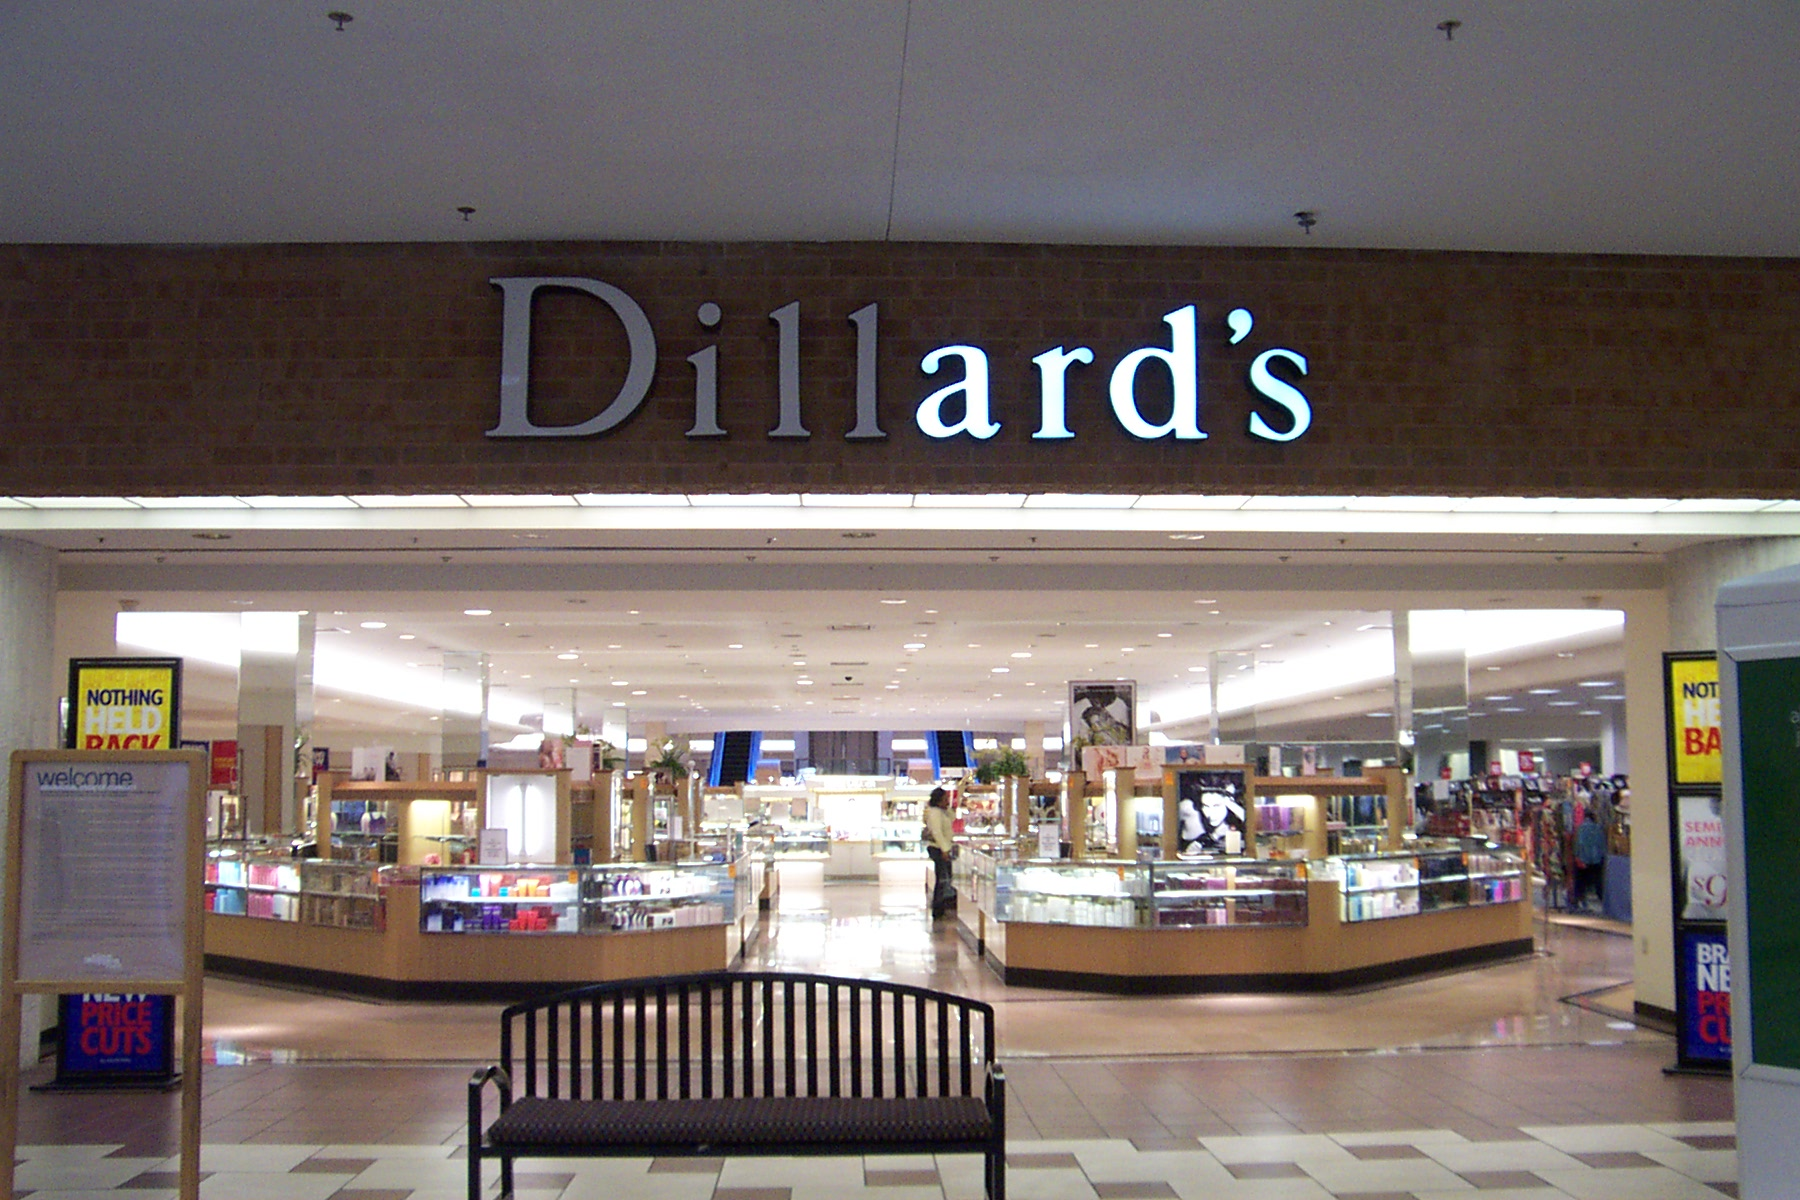 Dillards clothing store near me